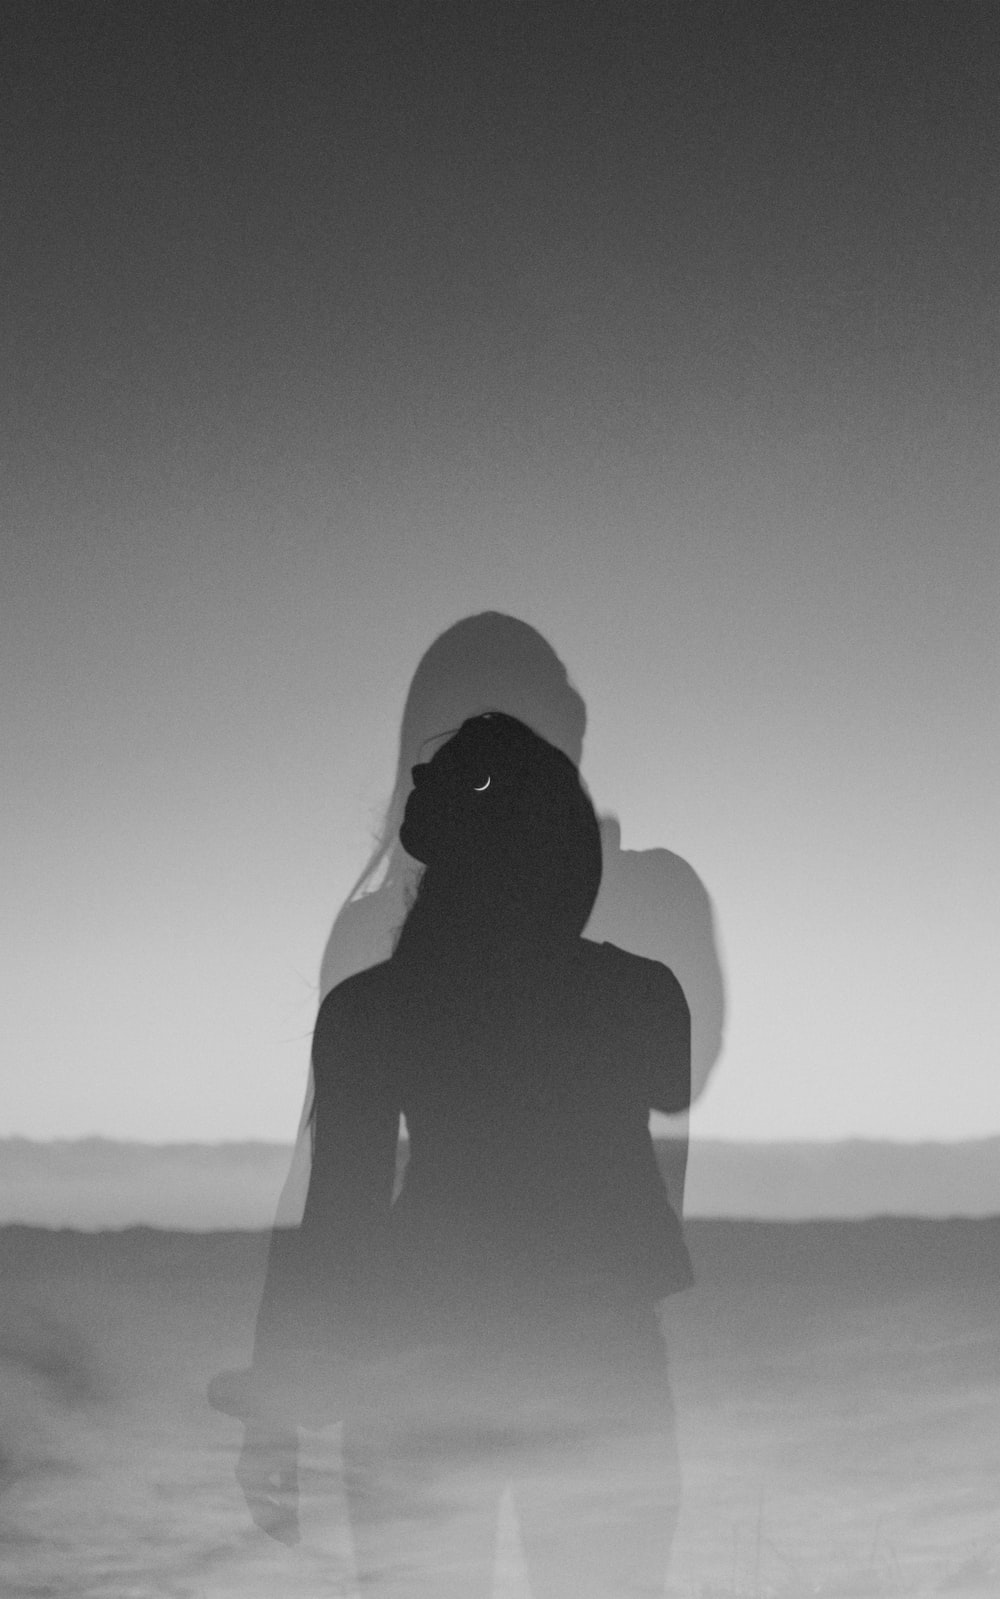 silhouette of person wearing hoodie